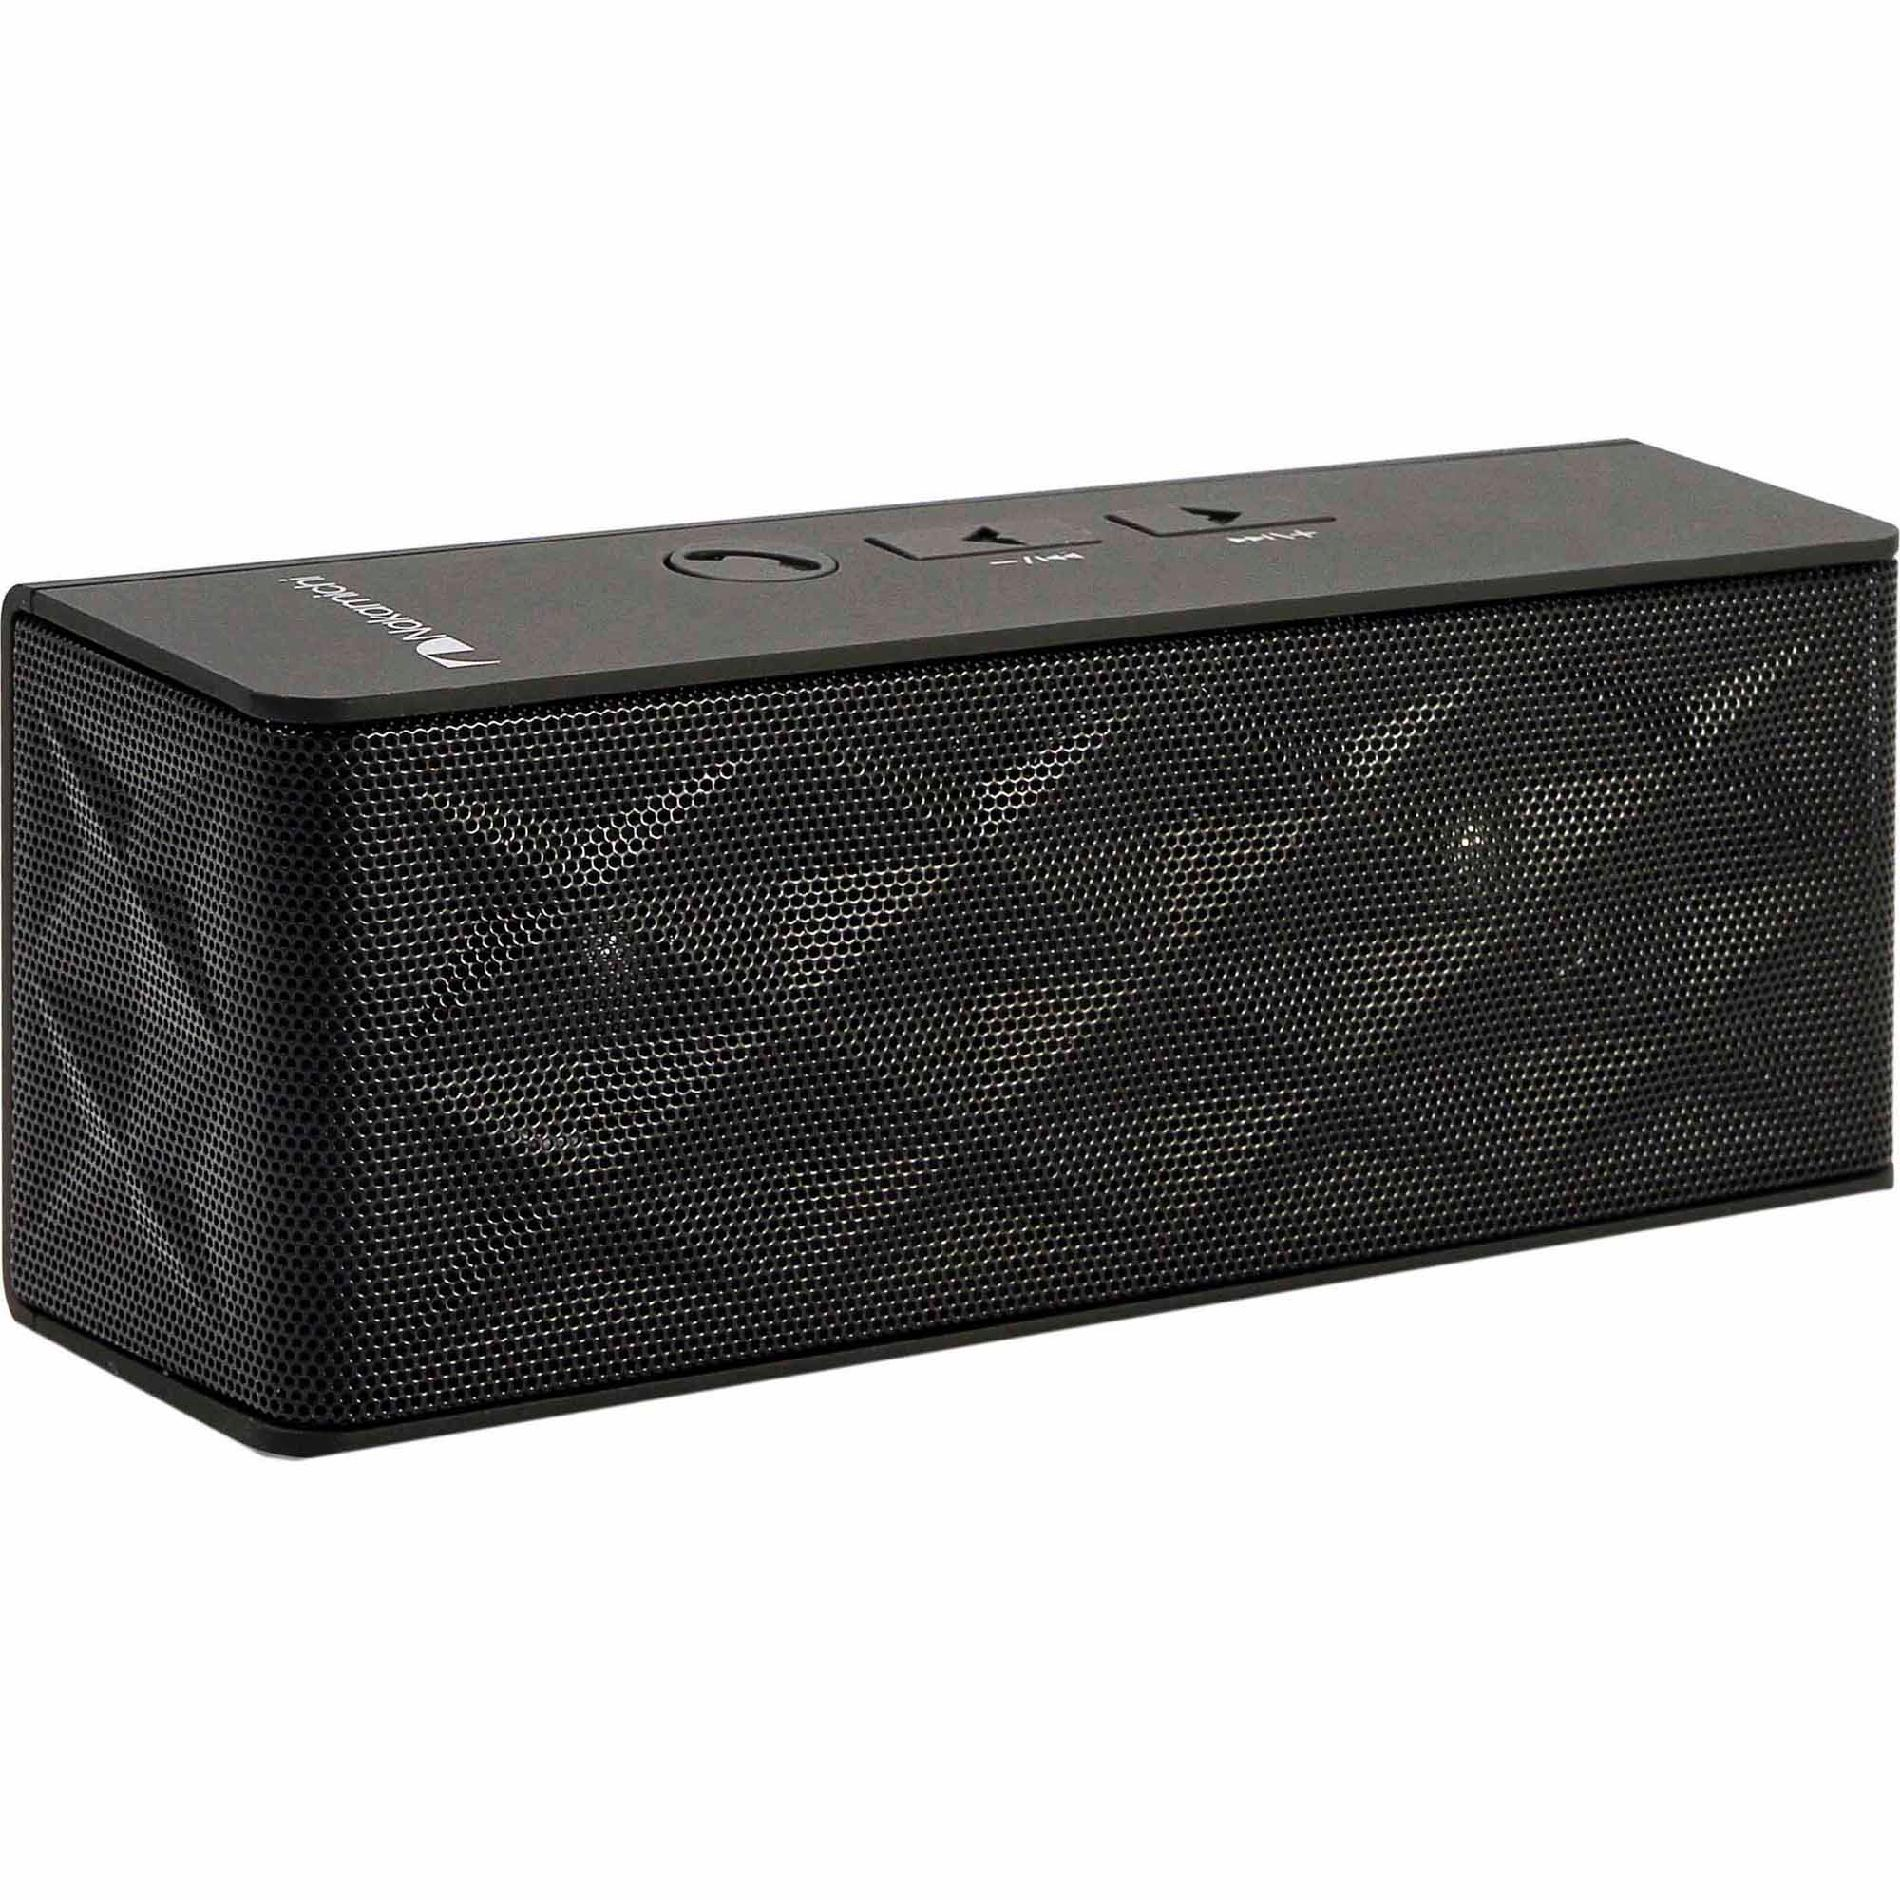 Nakamichi BT04 Bluetooth Speaker - Black